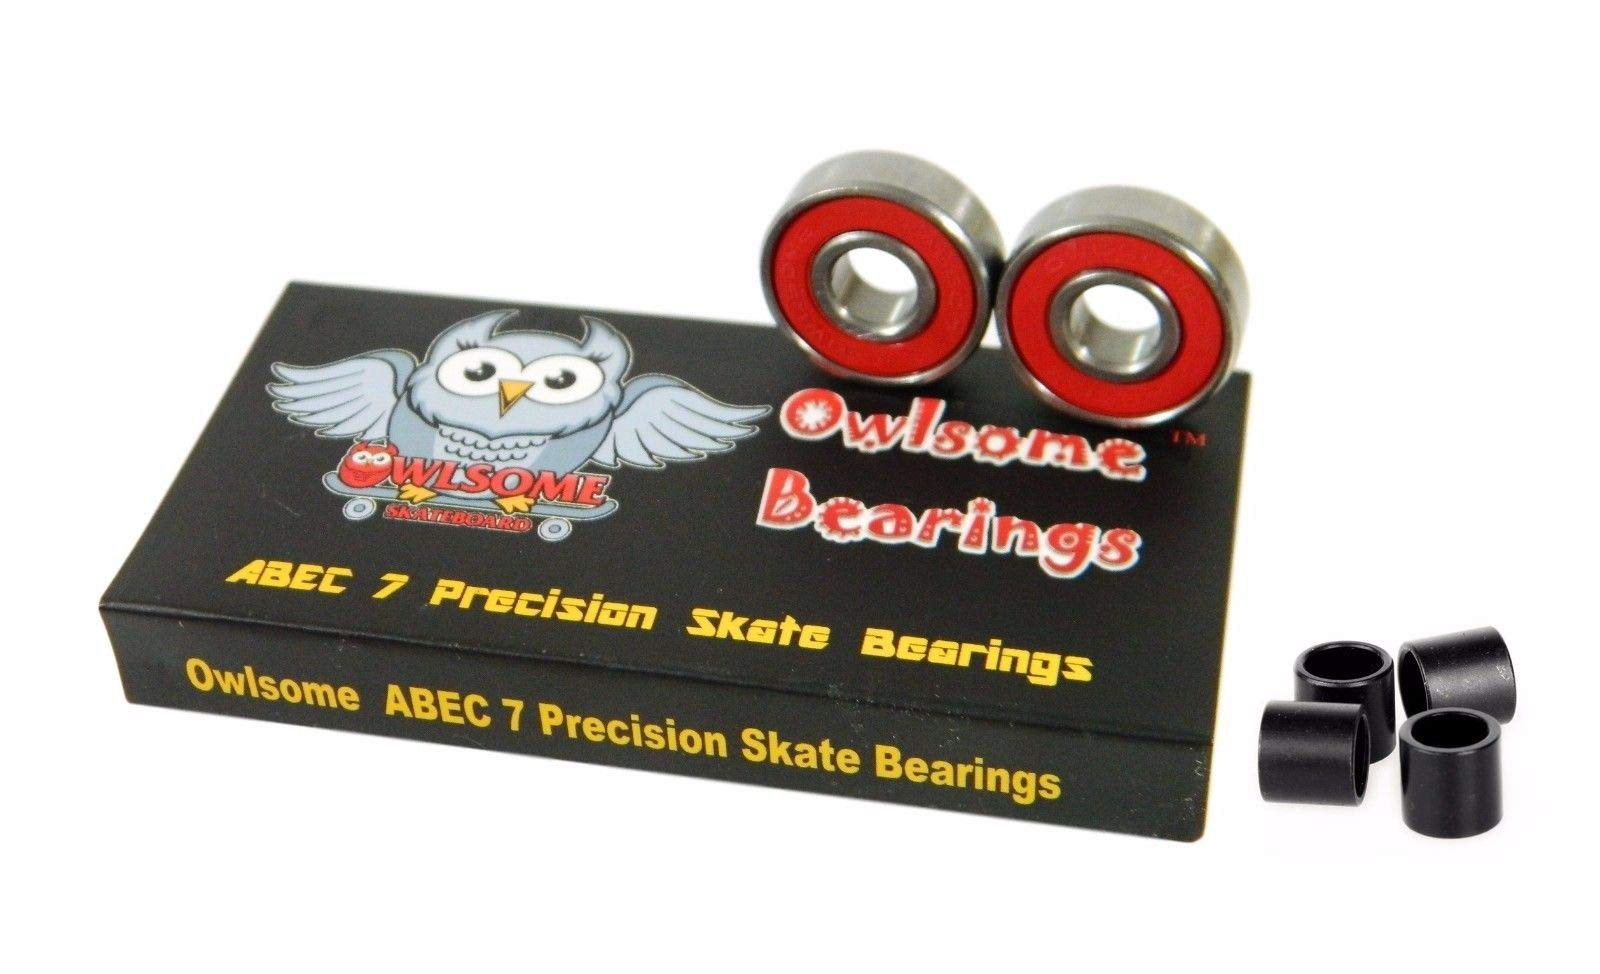 ABEC 7 Precision Skateboard Longboard Bearings with 4 Spacers